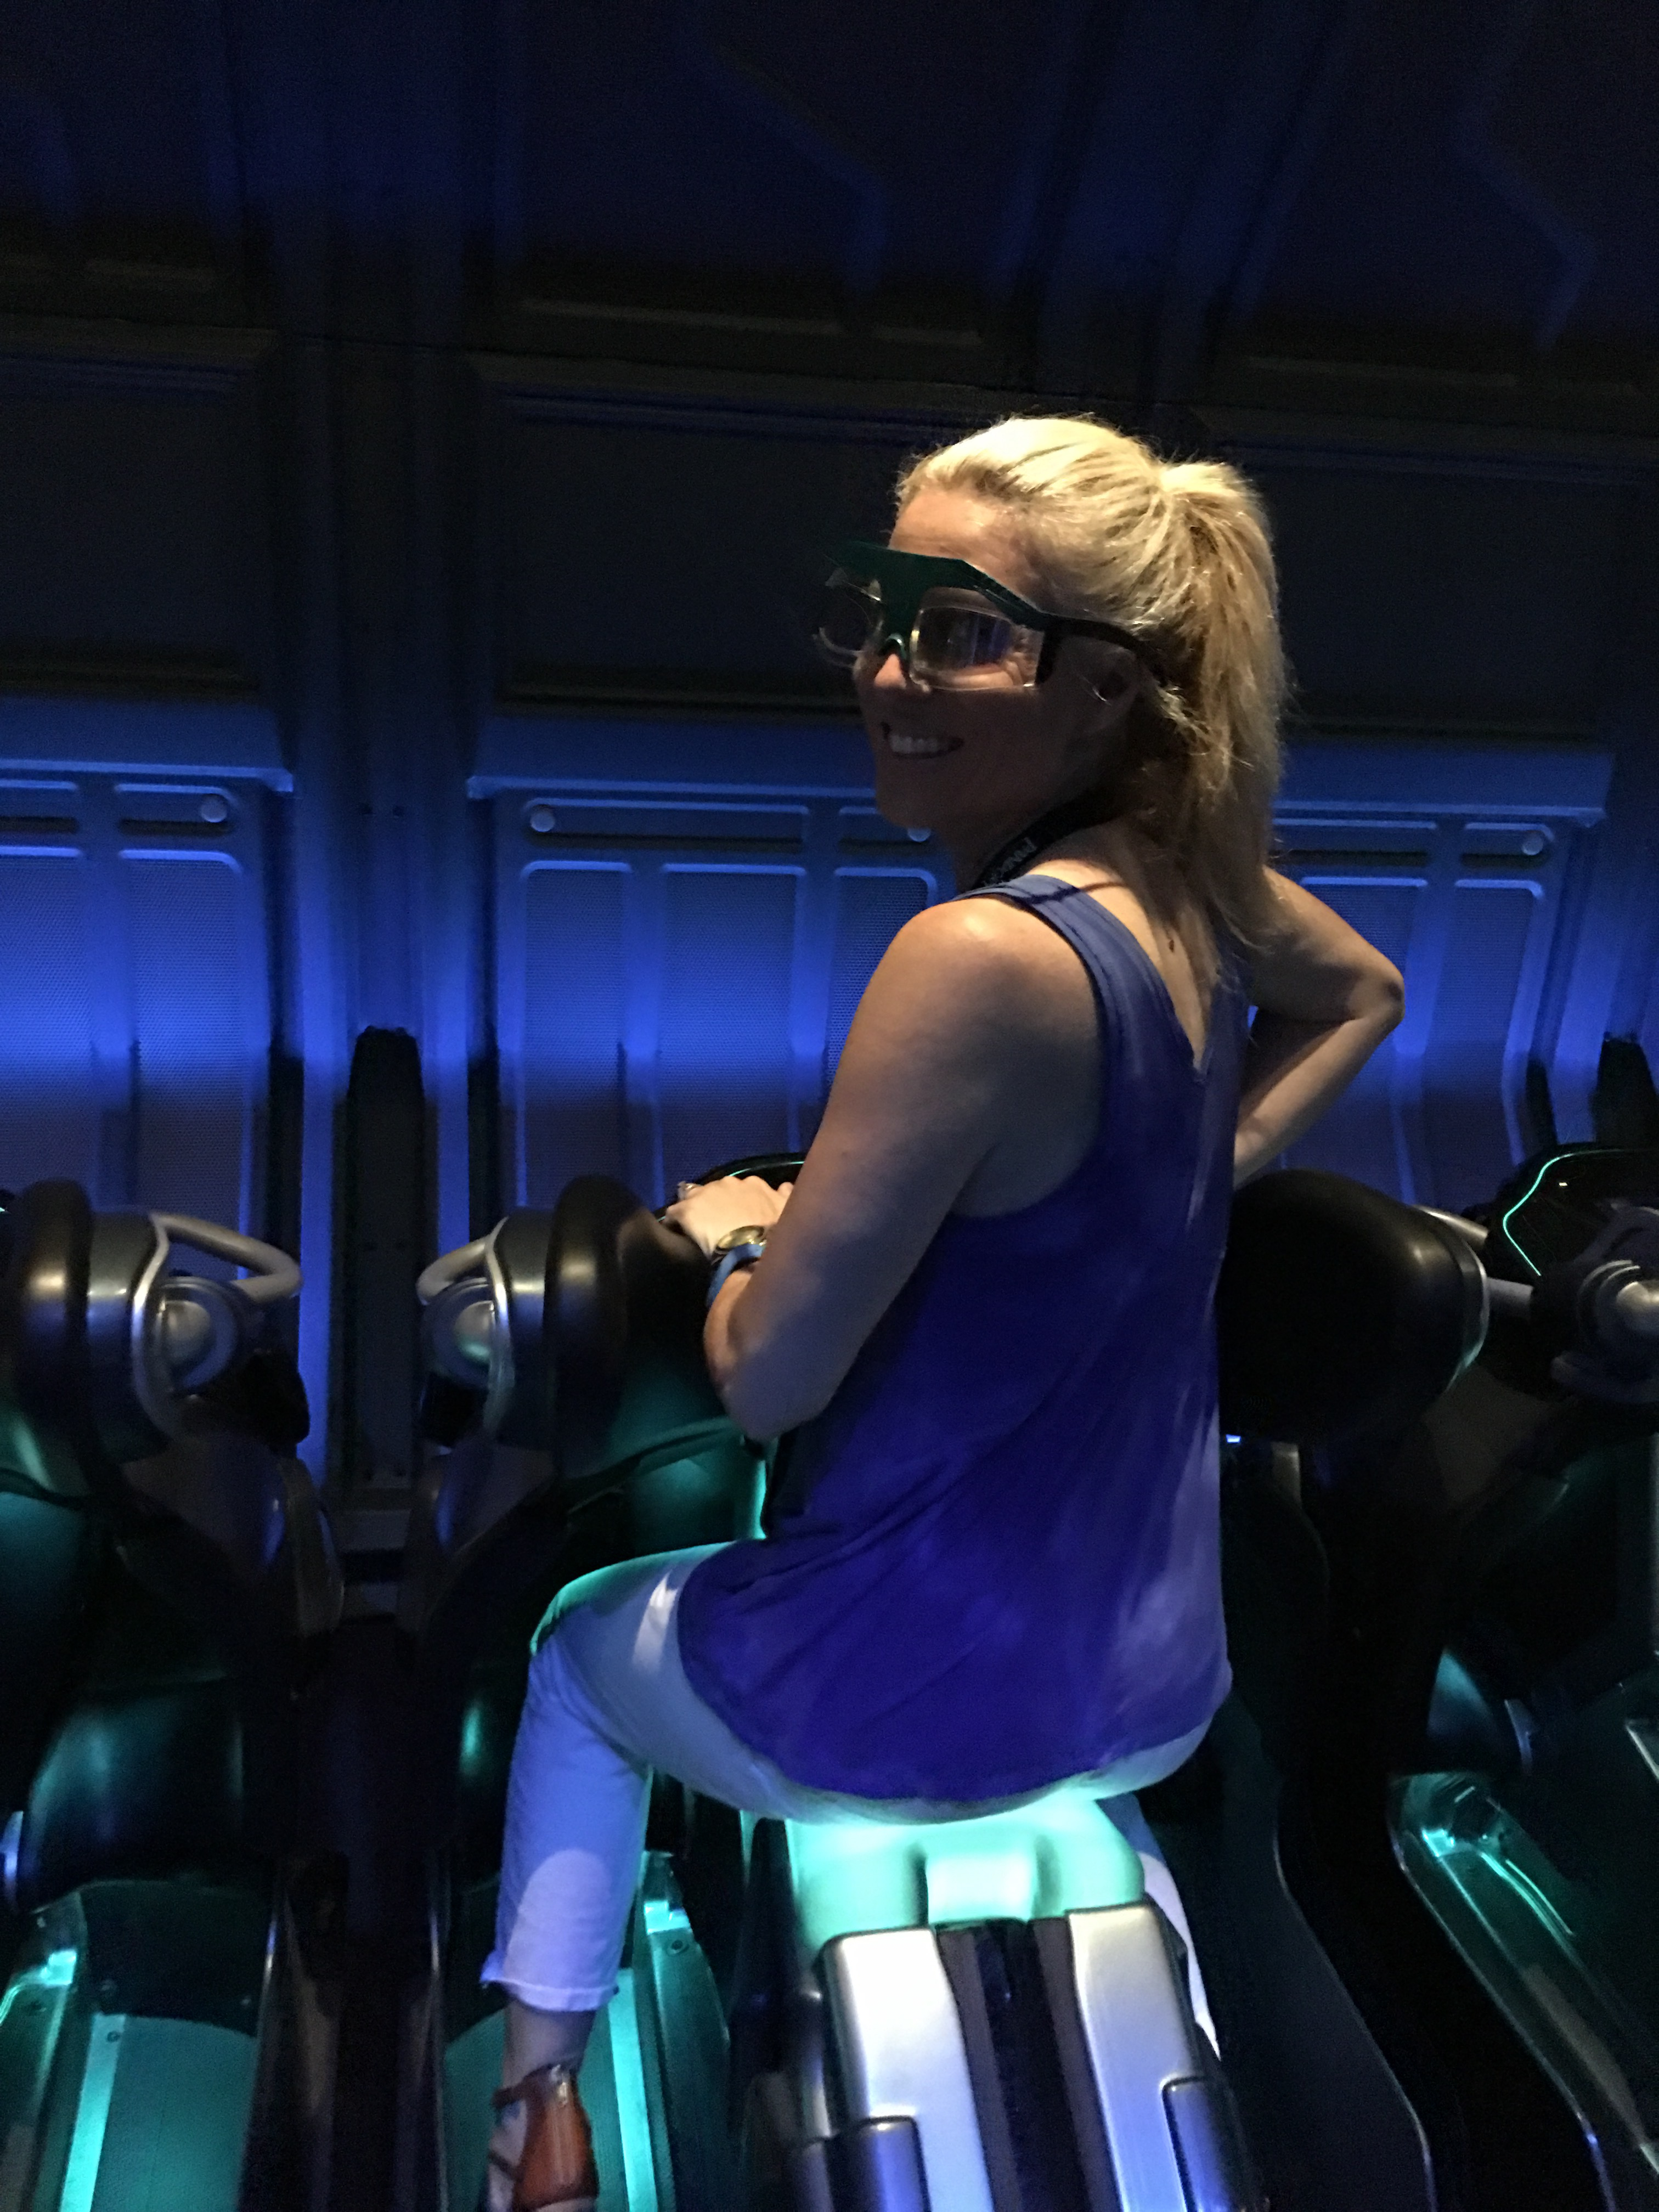 Here I am getting read to enjoy a ride at Pandora: The World of Avatar.